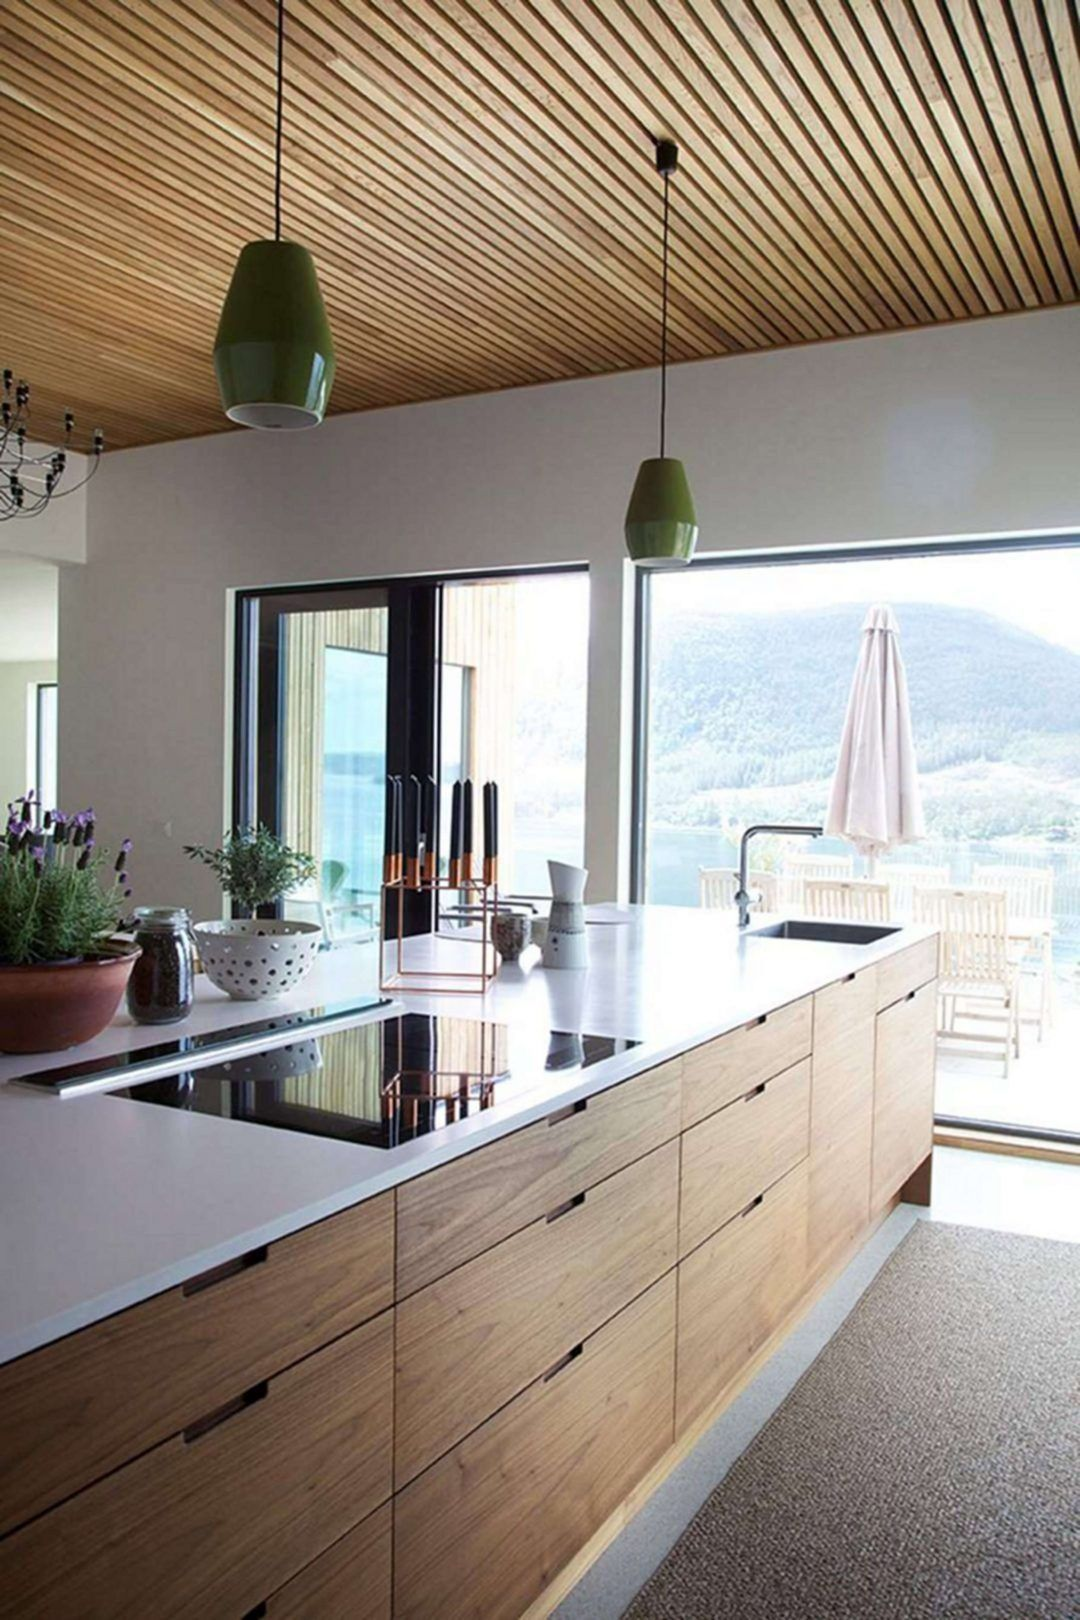 25 Mid Century Modern Kitchen Ideas To Beautify Your Cooking Area - 81E21D845Fb97627402F1Bcfec64Ad57